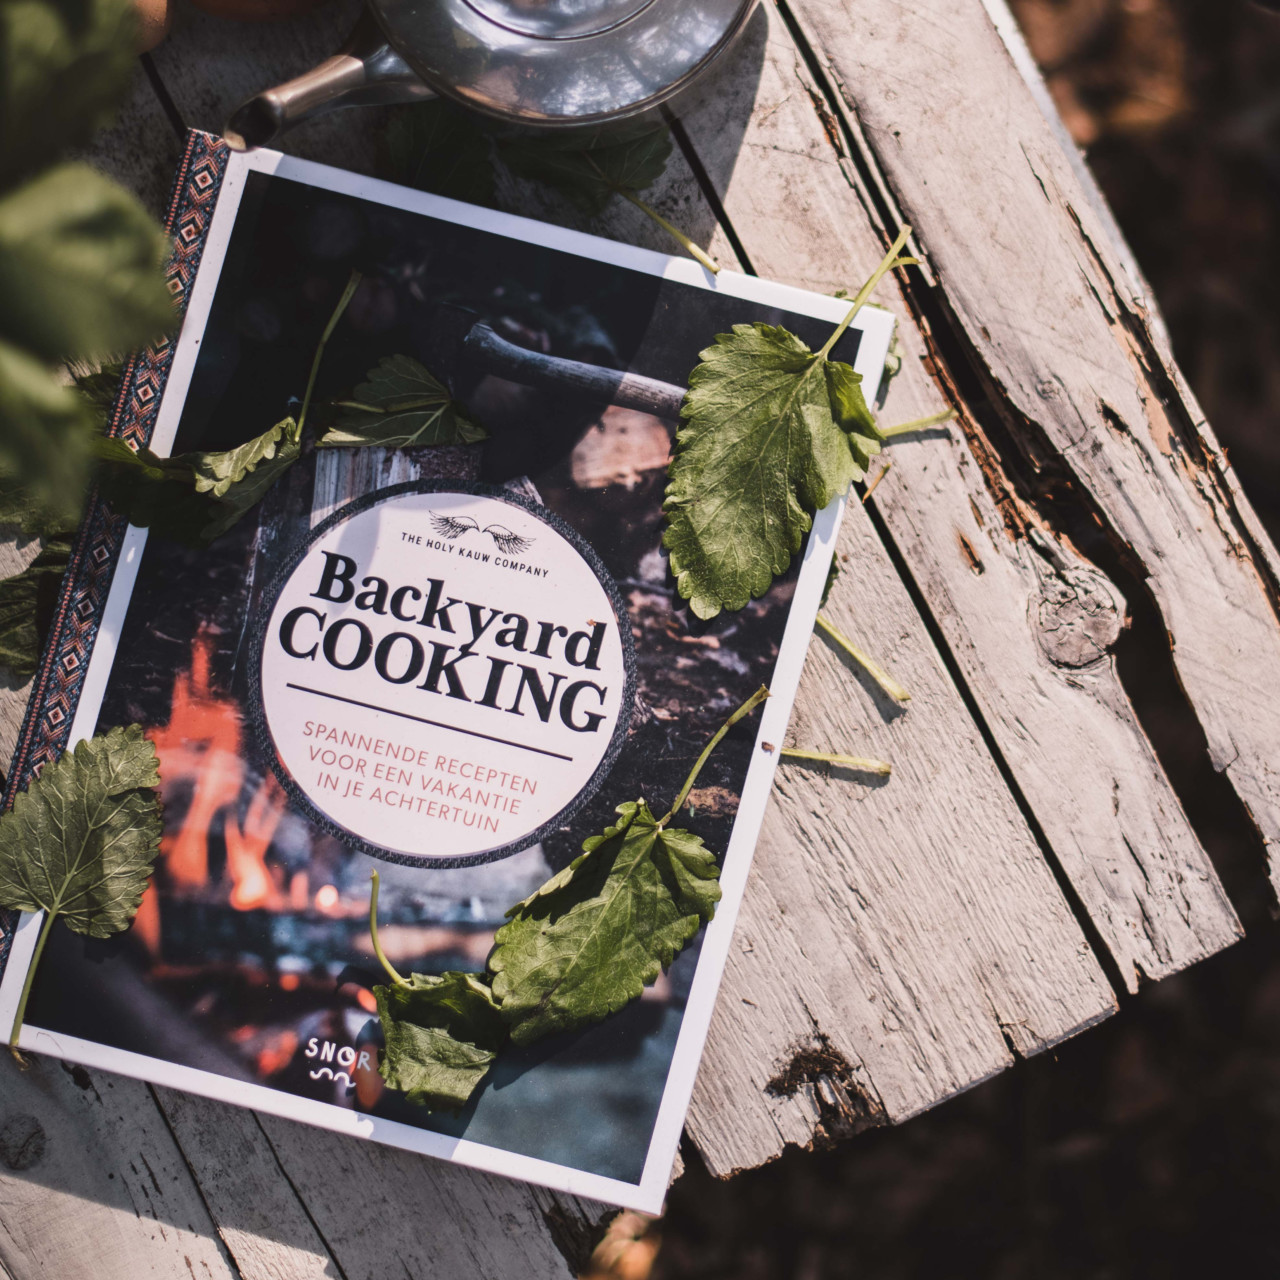 Backyard cooking – outdoor kookboek